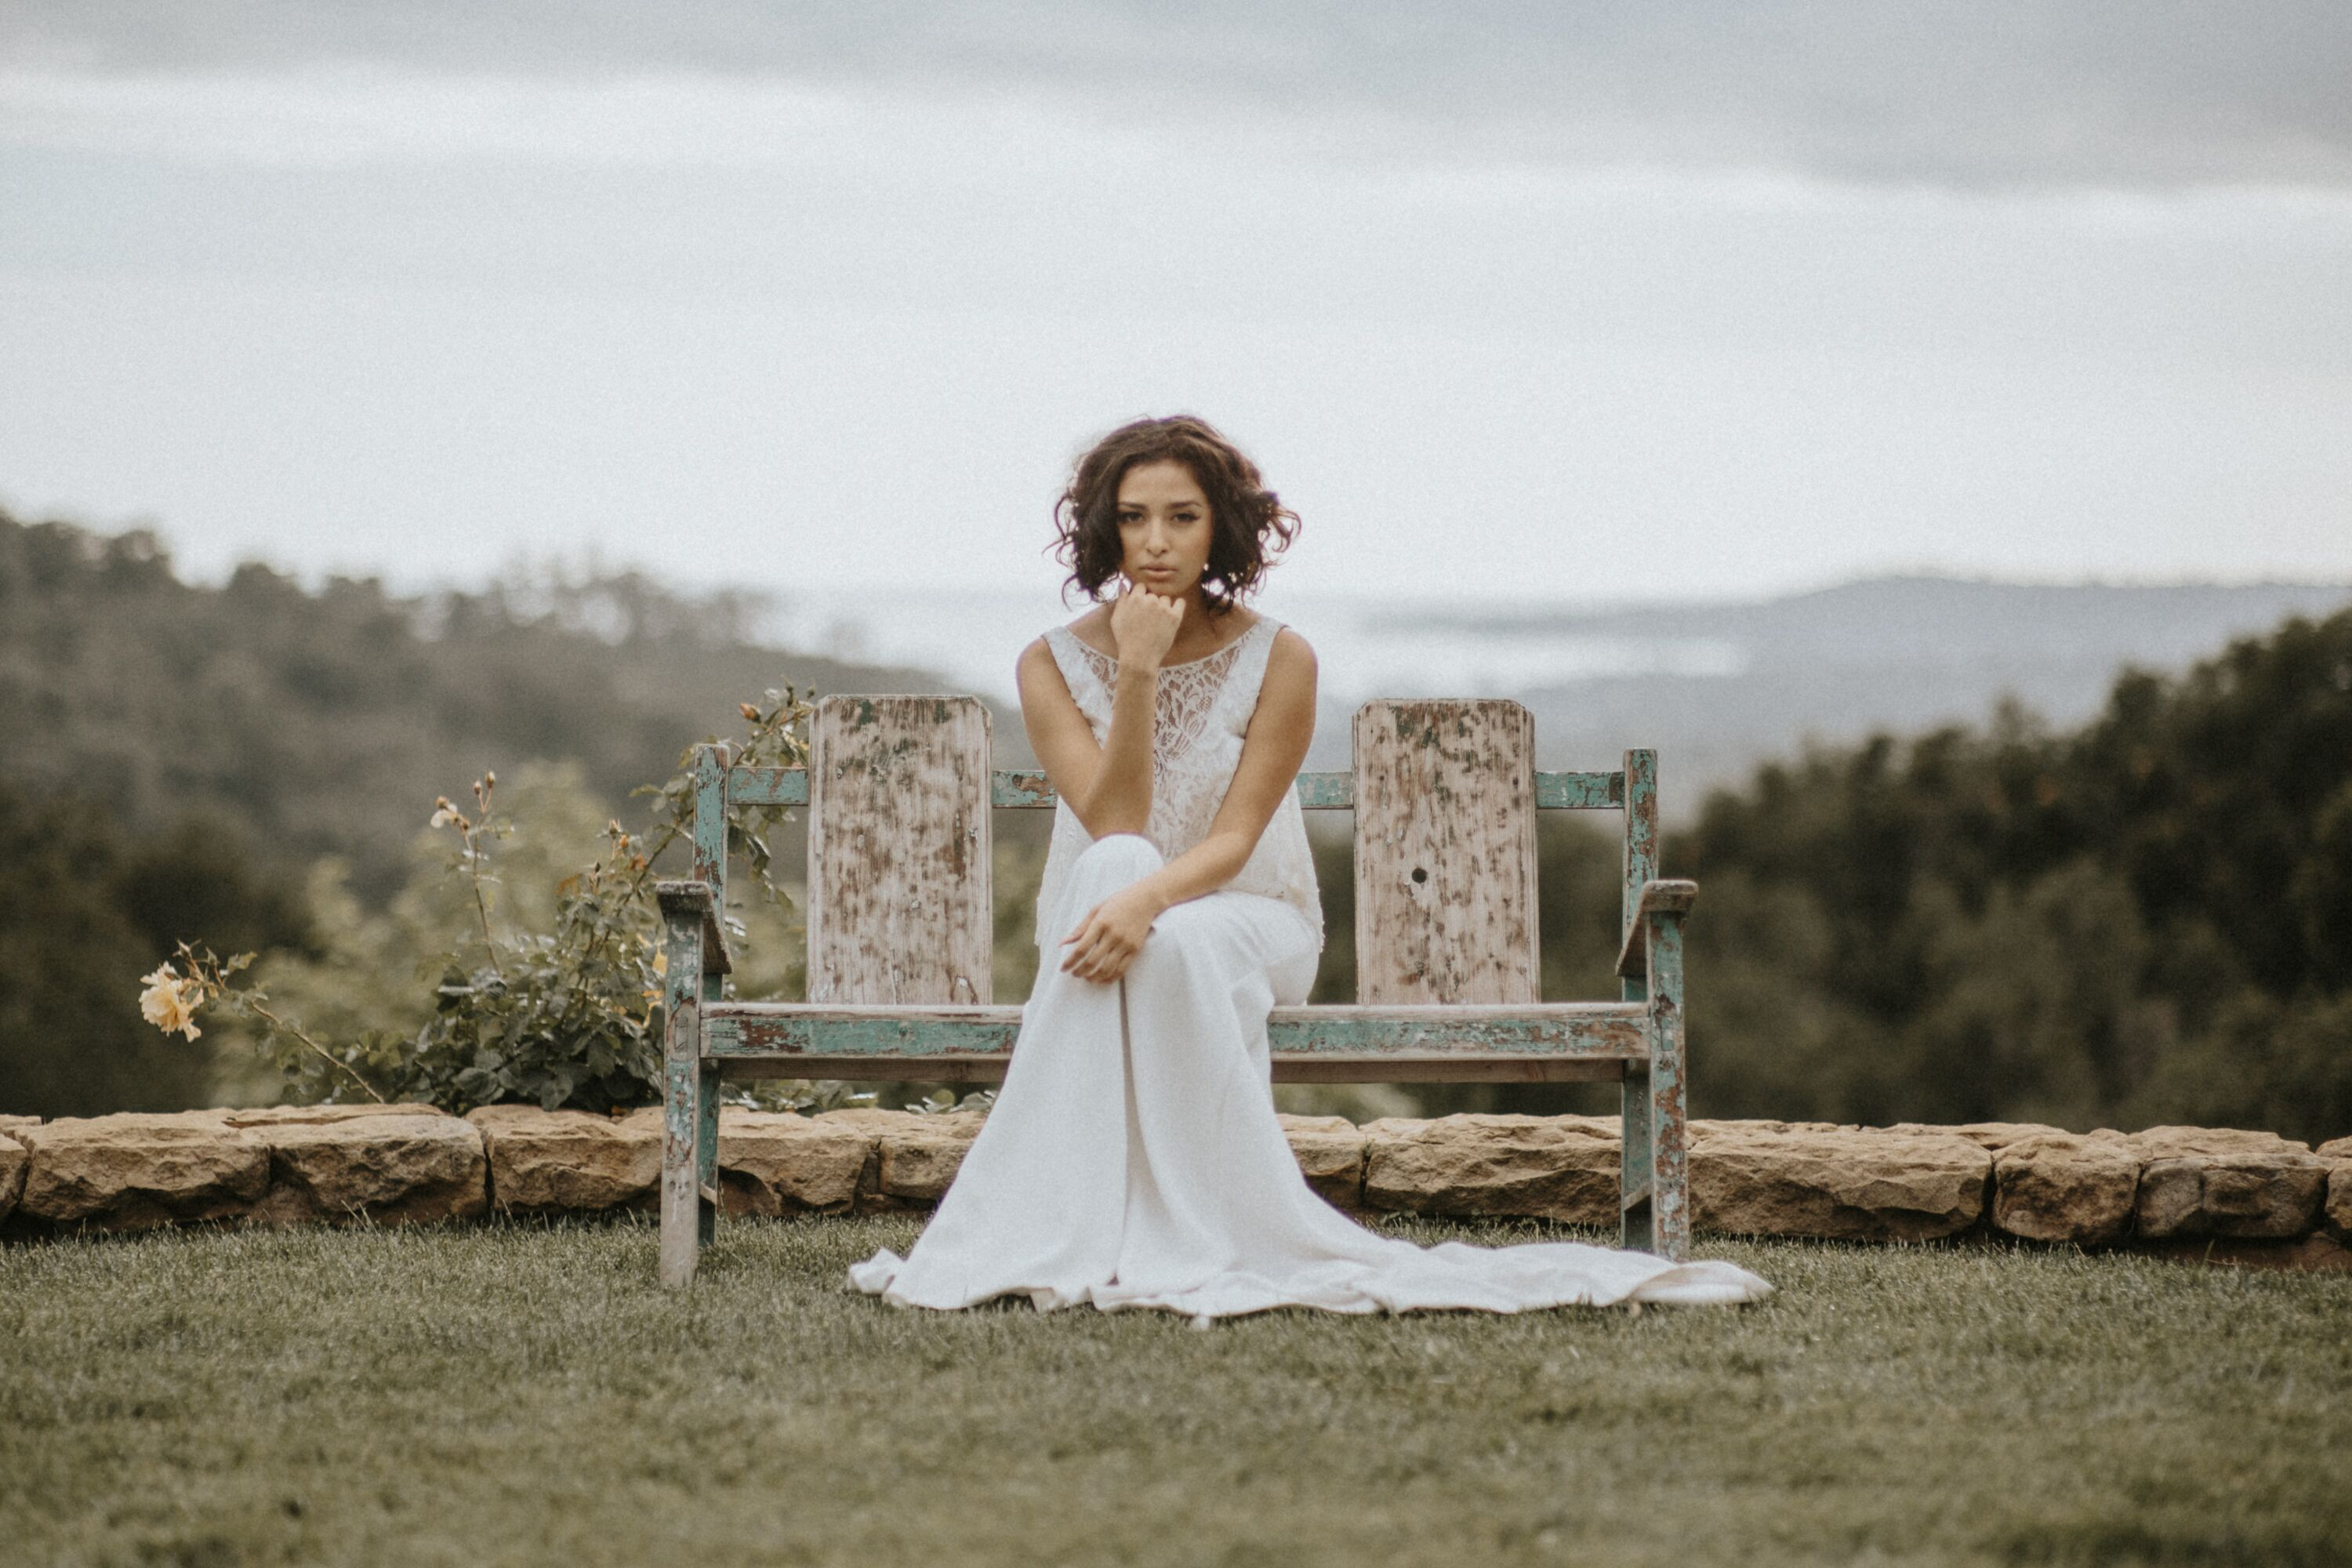 Bridal Salons In Bozeman Mt The Knot